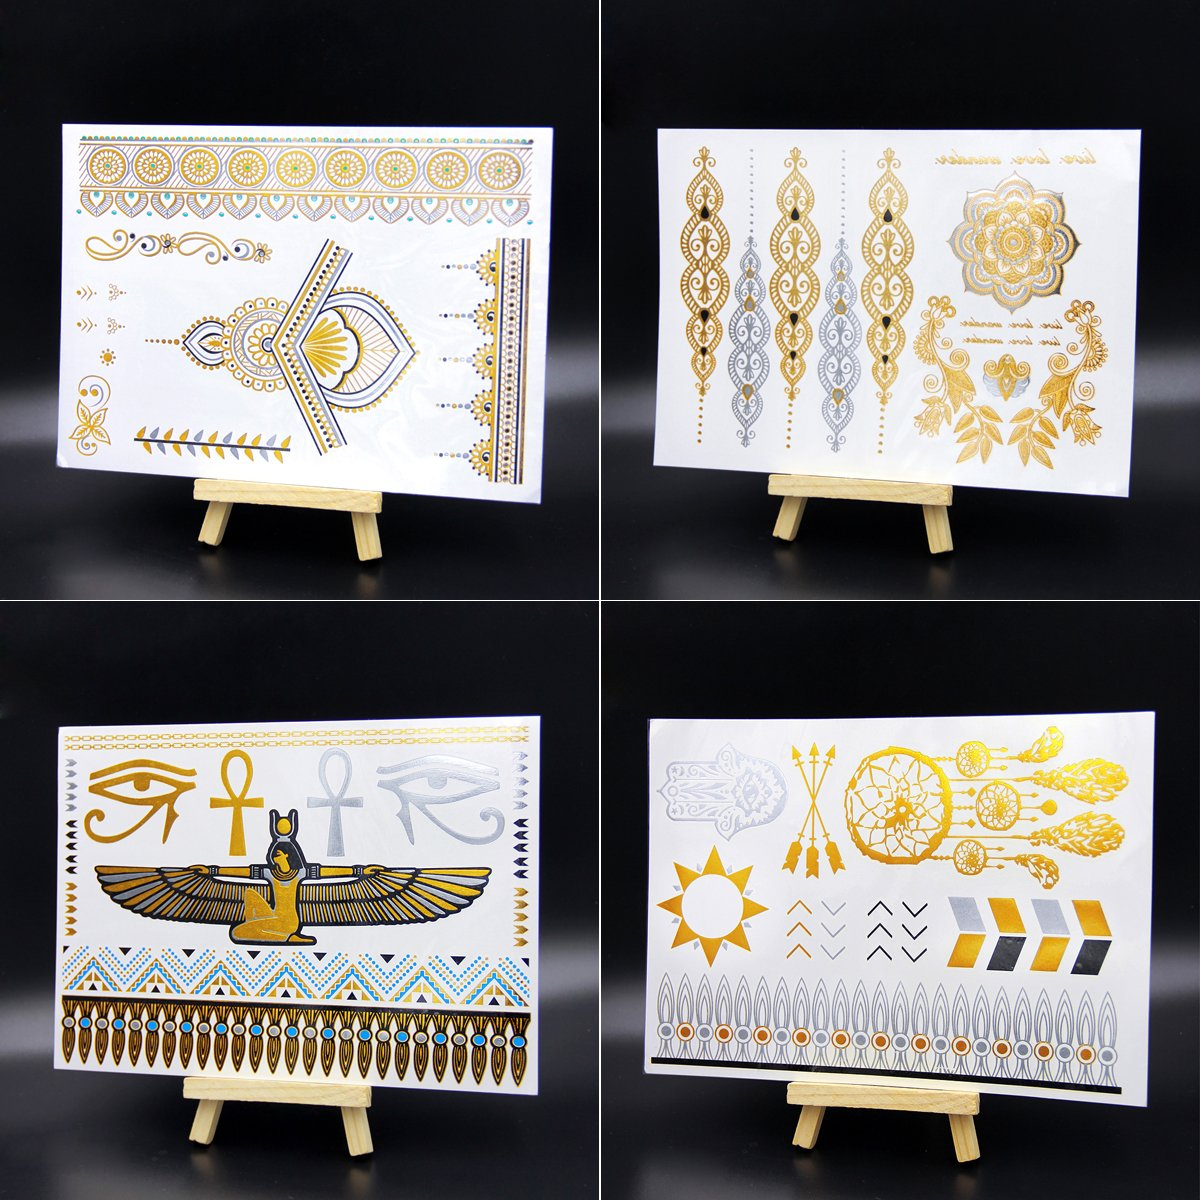 Leoars 4 Sheets Metallic Gold Flash Temporary Tattoos Paper Festival Flash Tattoos Henna Tattoo Stickers for Women Girl FLASH-4